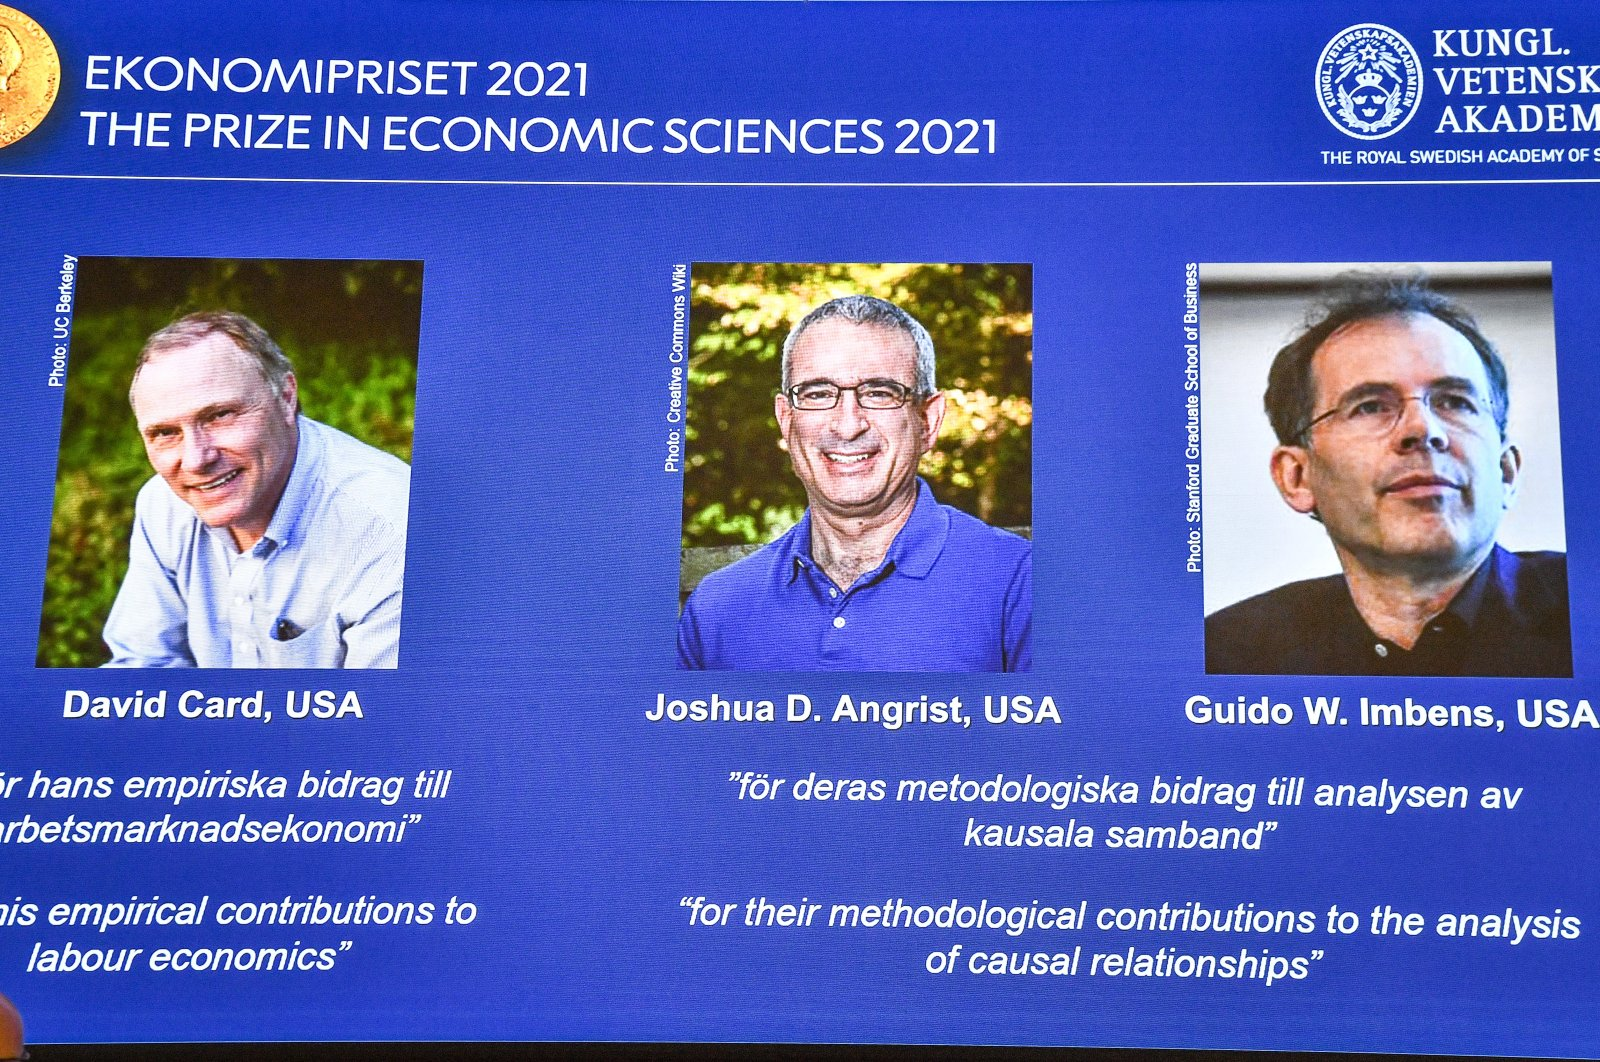 (L-R) David Card, University of California, Berkeley, U.S., Joshua D. Angrist, Massachusetts Institute of Technology, Cambridge, U.S. and Guido W. Imbens, Stanford University, U.S., seen on a screen during the announcement of the Sveriges Riksbank Prize in Economic Sciences in Memory of Alfred Nobel 2021, during a press conference at the Royal Swedish Academy of Sciences in Stockholm, Sweden, Oct. 11, 2021. (EPA-EFE Photo)